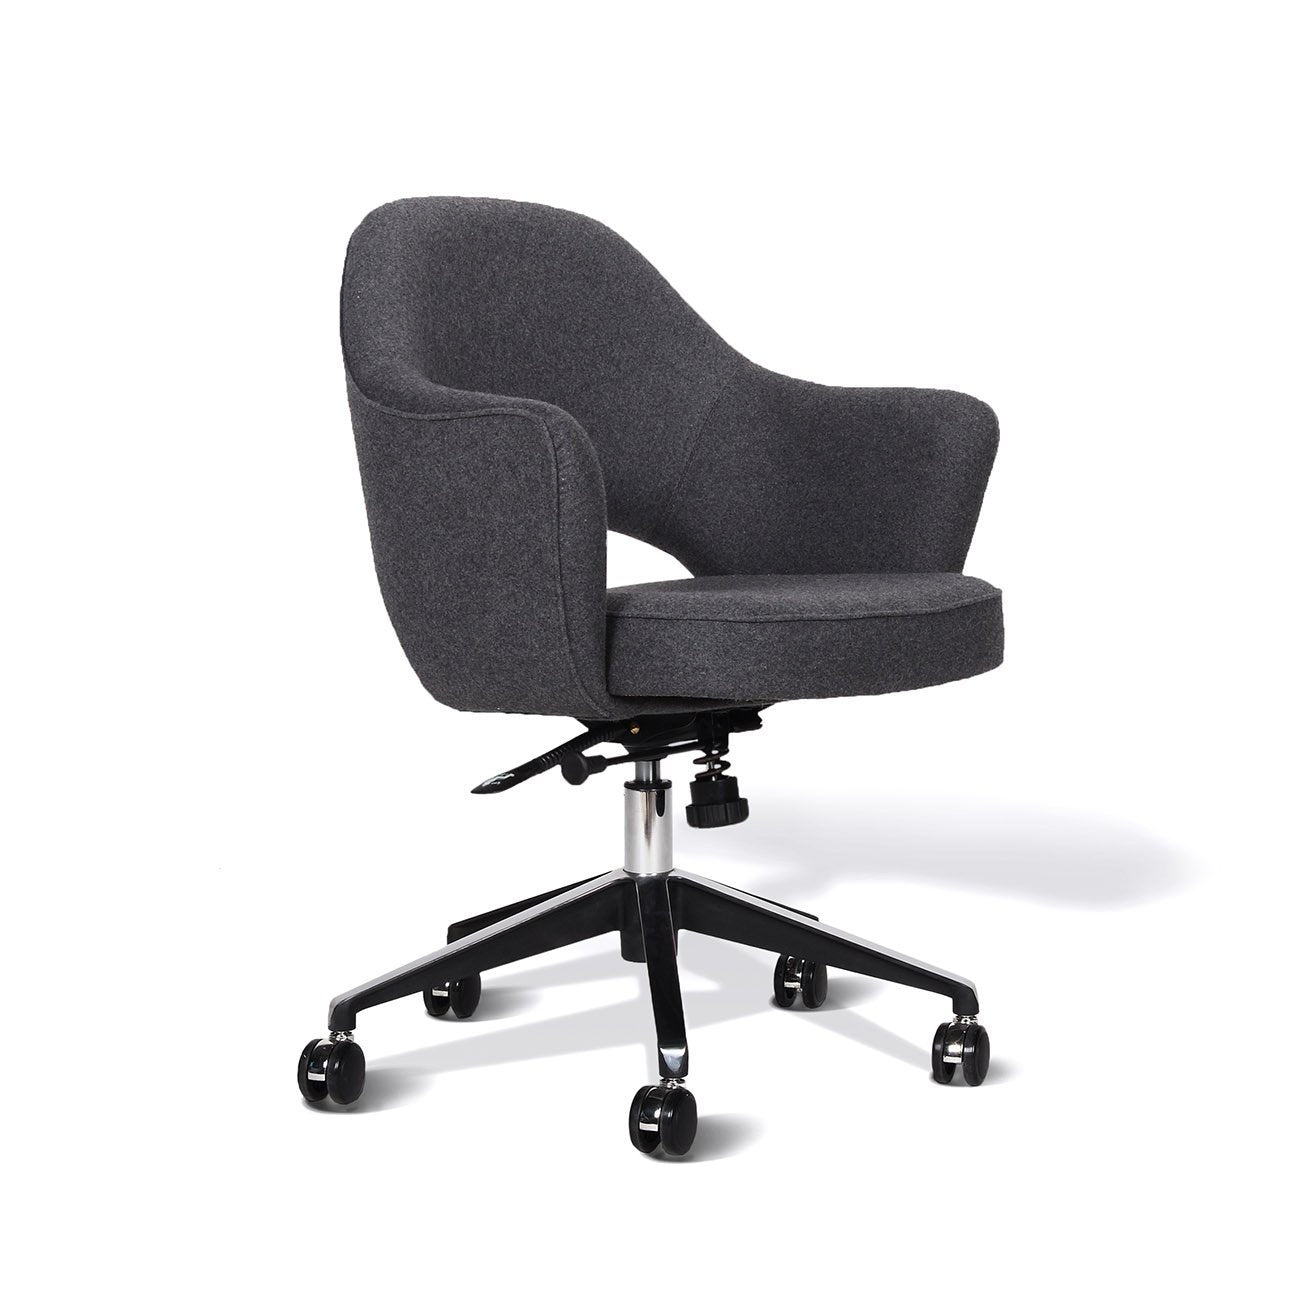 [FB0004GREY] The Peterson Office Chair